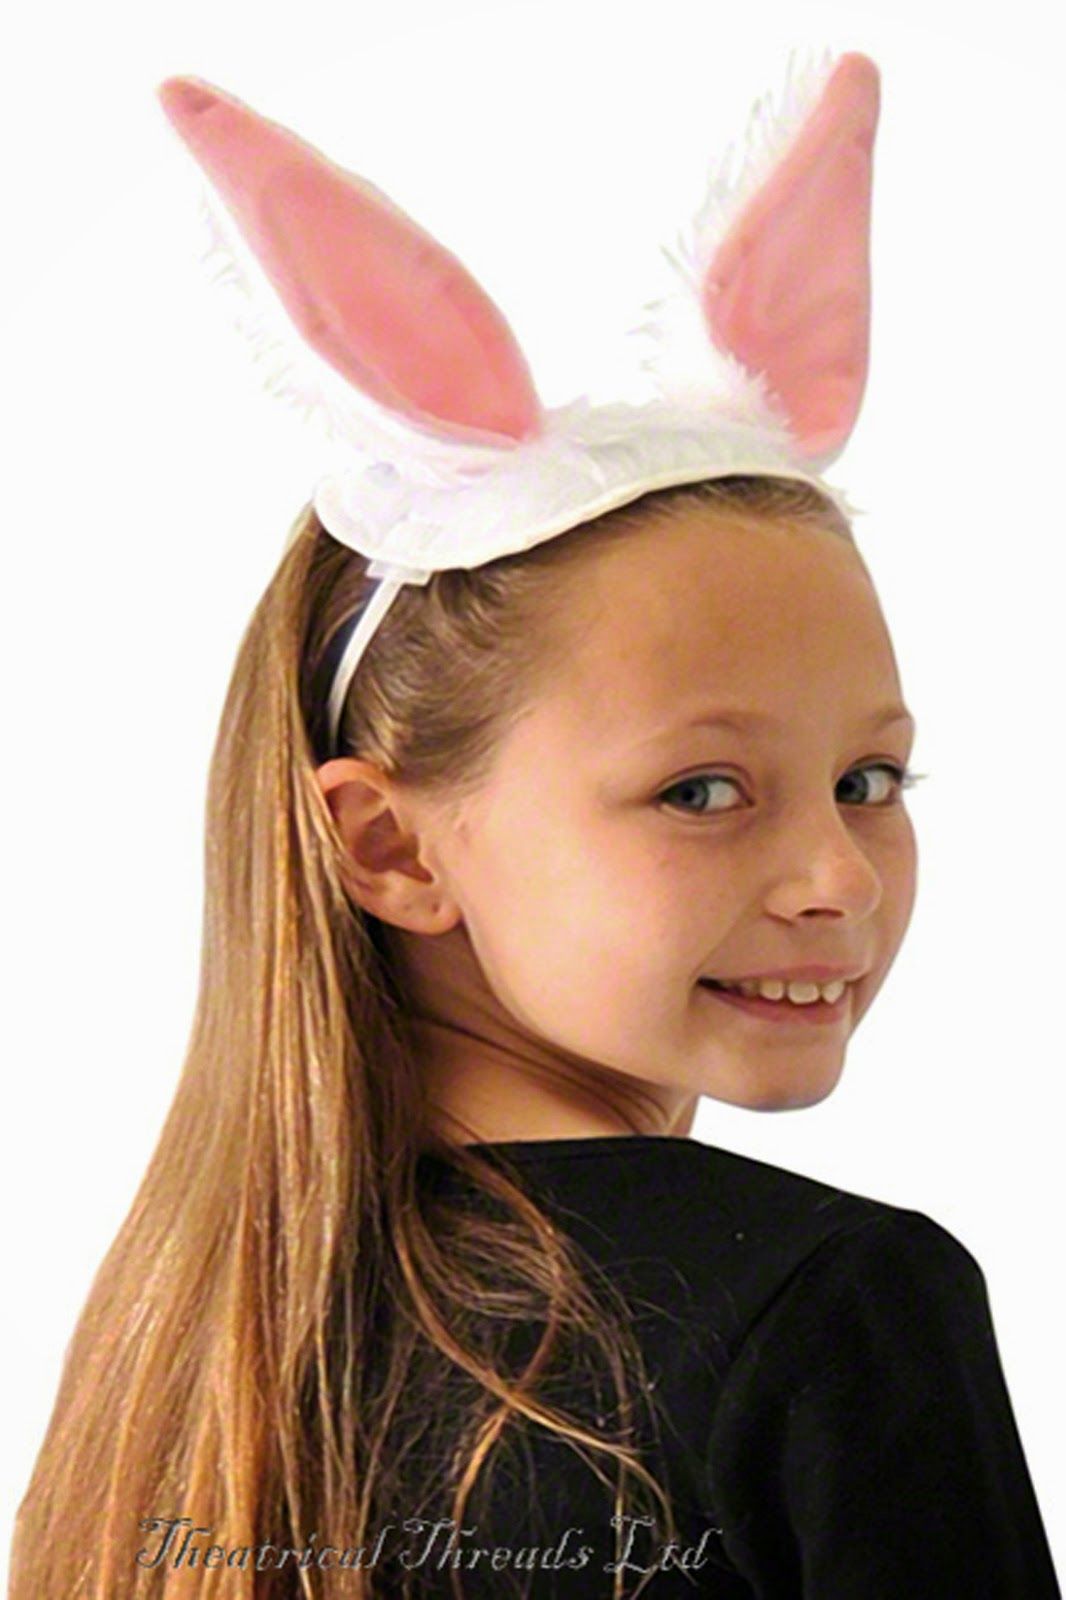 Kids Easter Bunny Costume Rabbit Ears and Tail Theatrical Threads Ltd